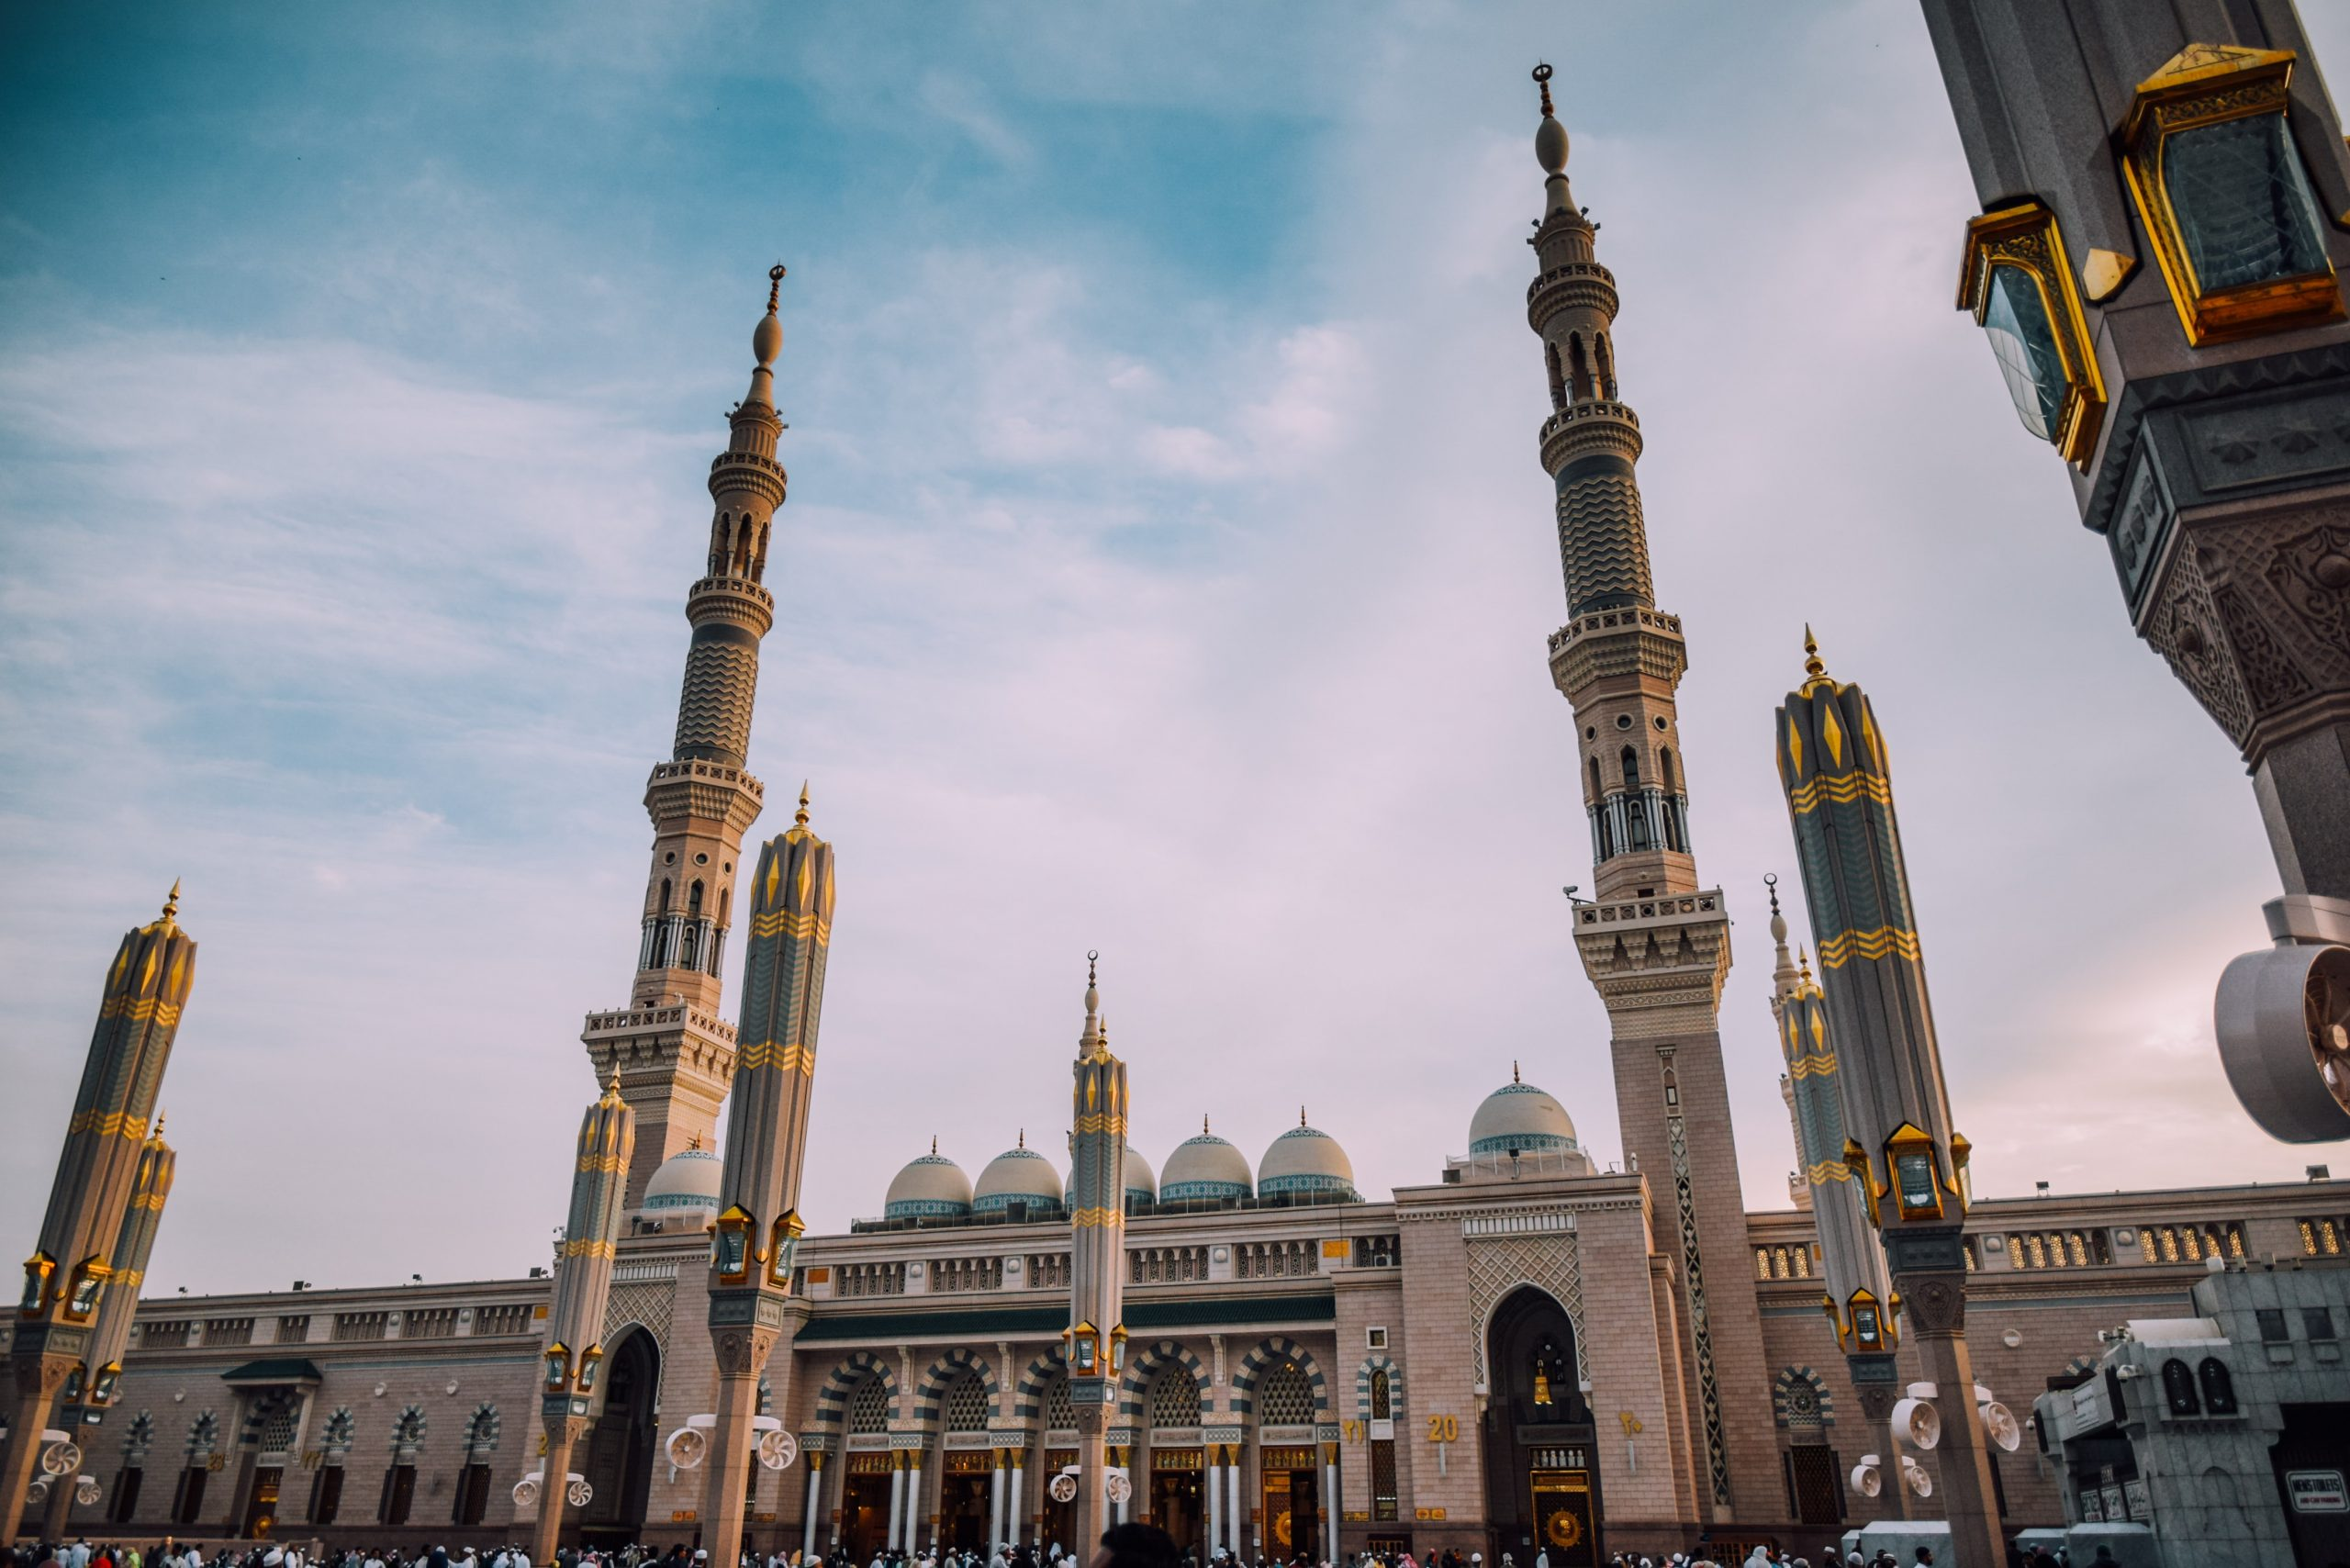 Nabawi Mosque in one of the Saudi Arabia cities you should consider expanding your business to.